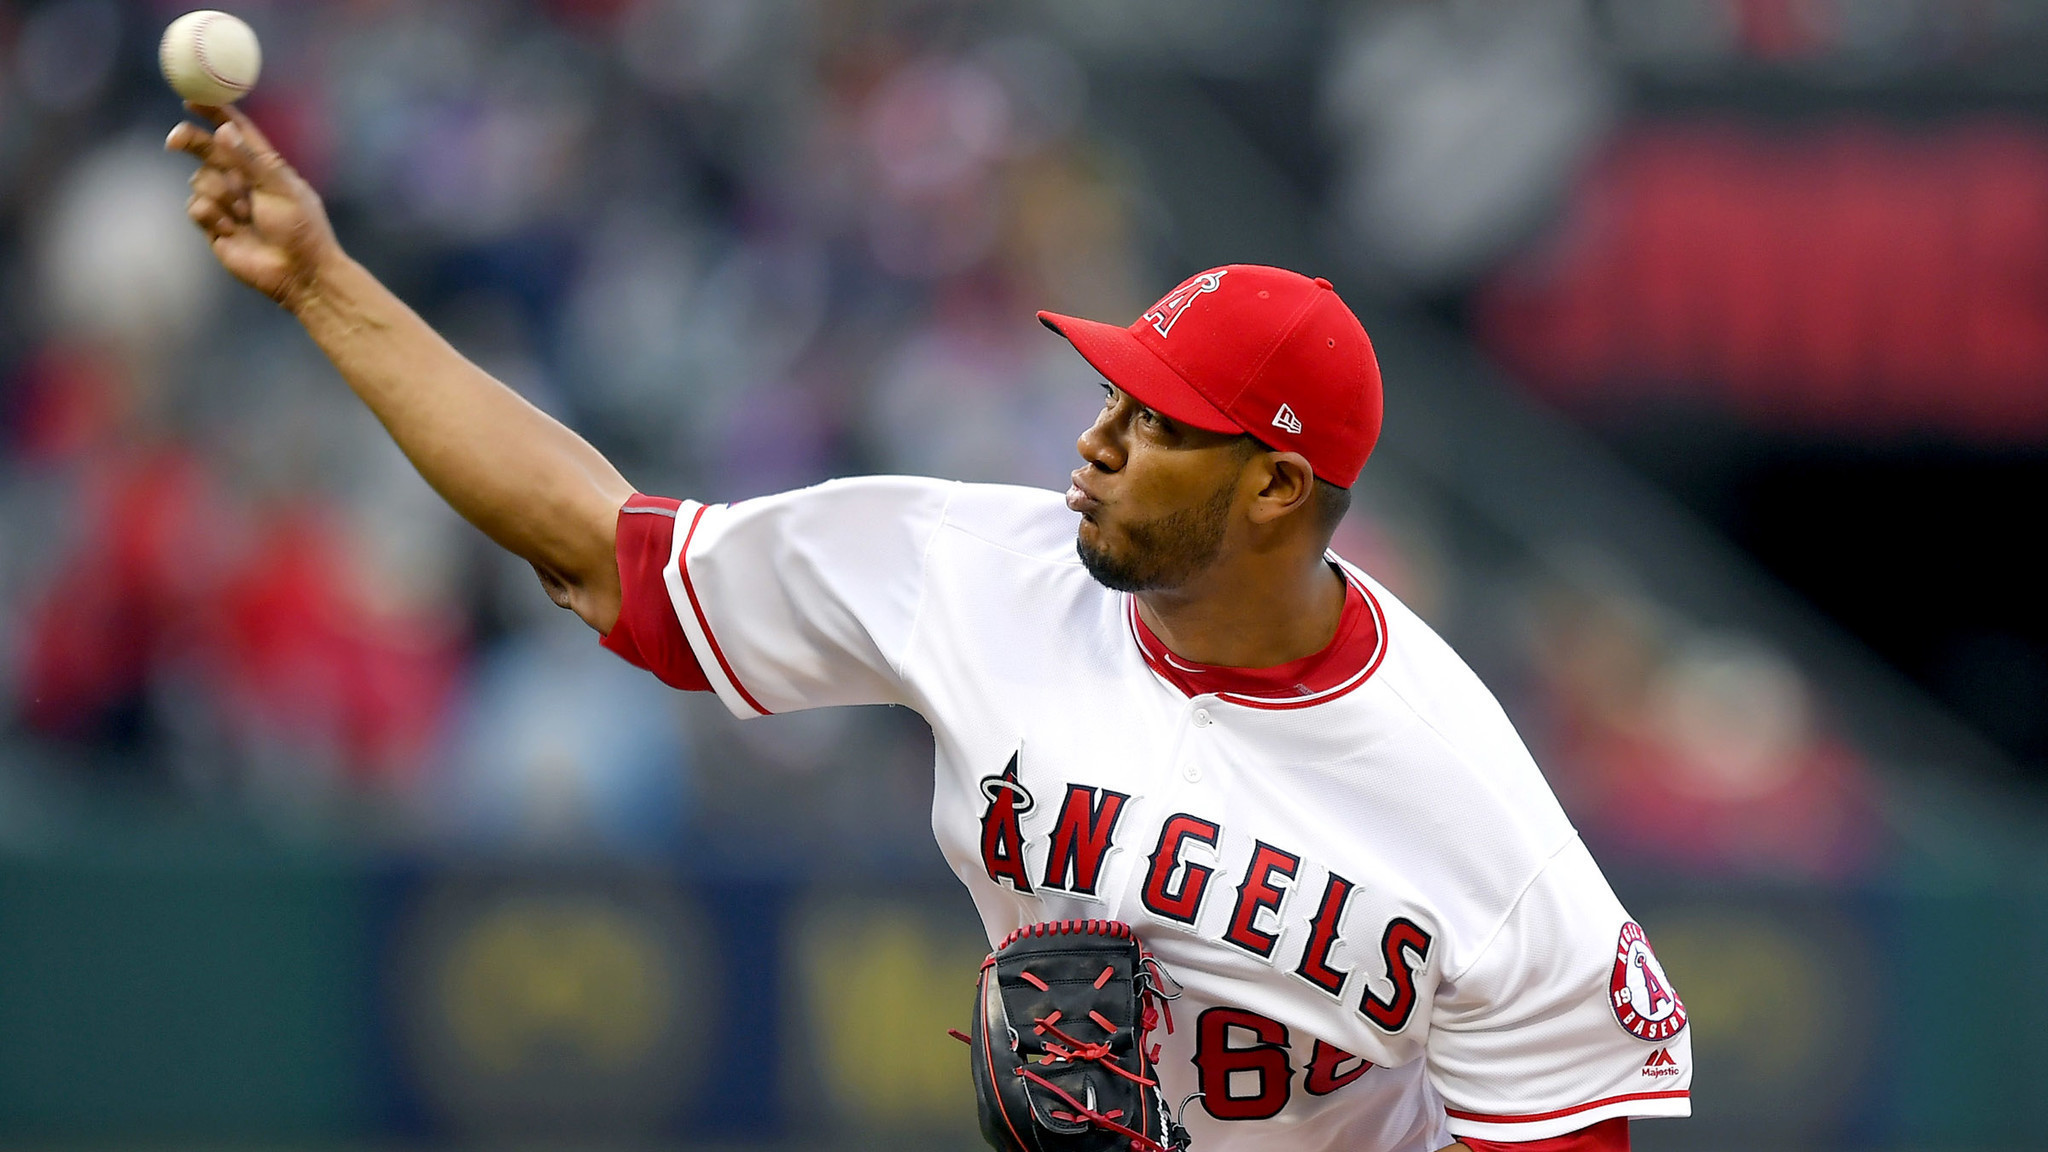 Angels beat Astros in walk-off fashion, 2-1 (2.08/12)